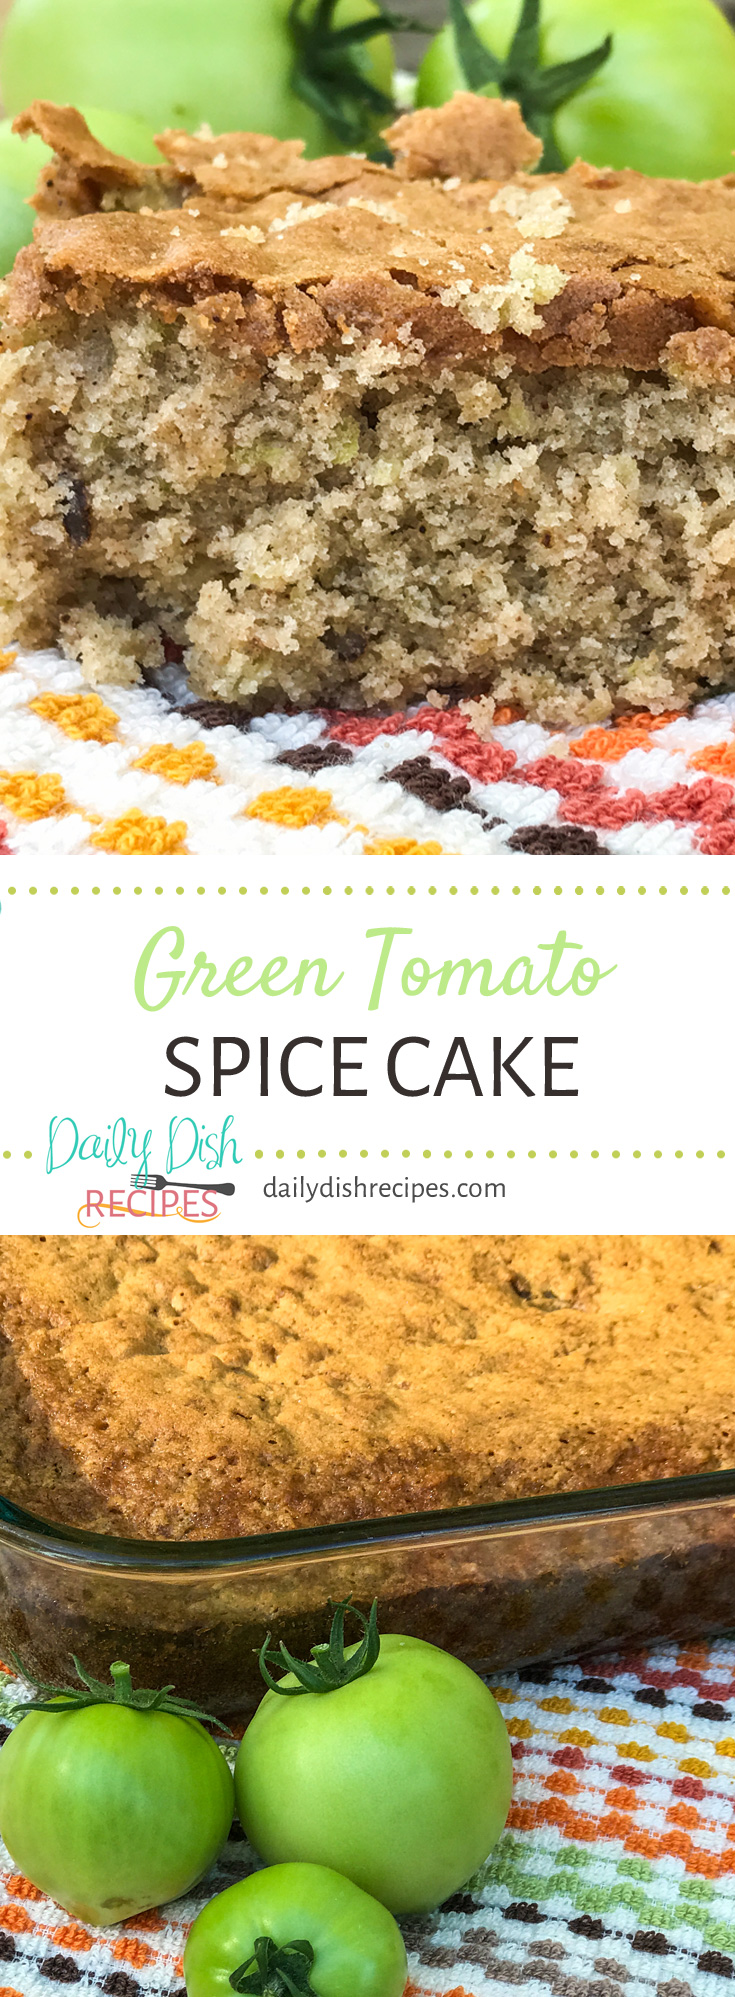 It isn't what it sounds like - it's an incredible slice of Fall, with a coffee cake texture and a delicious spiced flavor, this Green Tomato Spice Cake will be added to your fall recipes when you're in the mood for some fall baking!